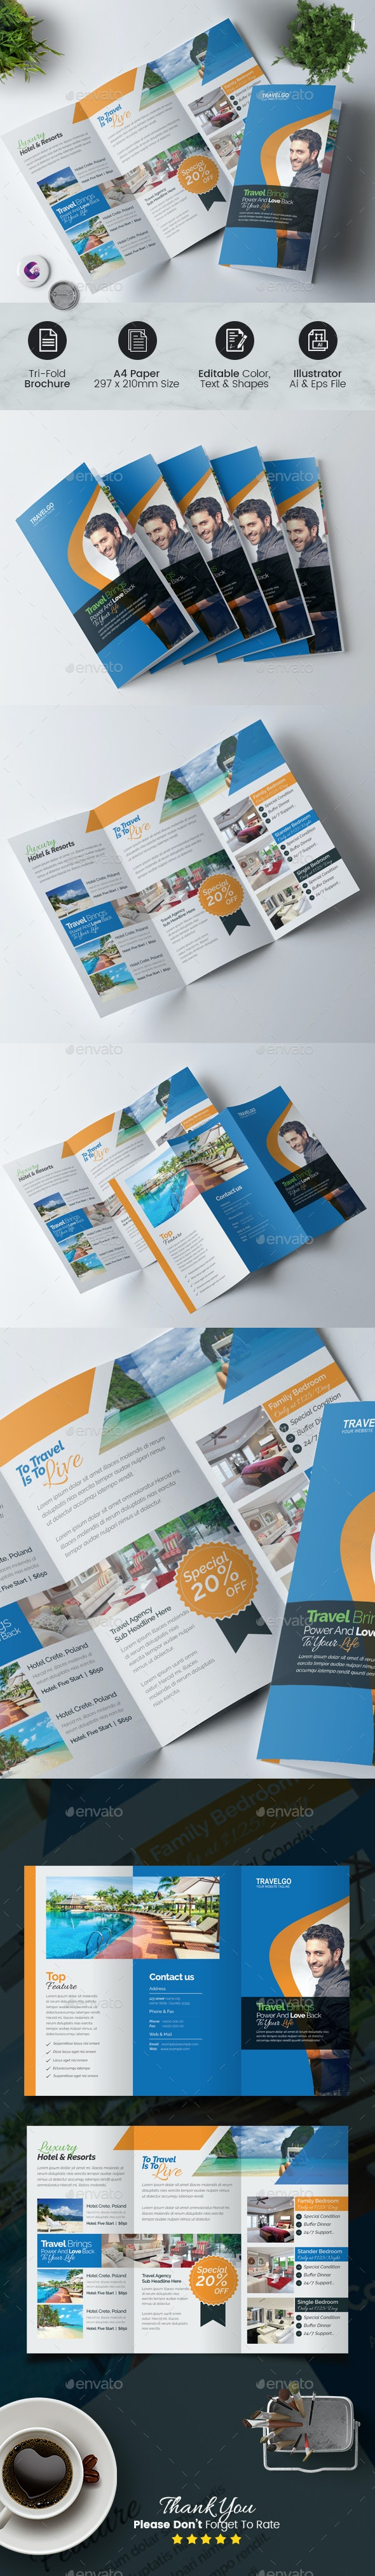 Hotel & Travel Trifold Brochure - Corporate Brochures